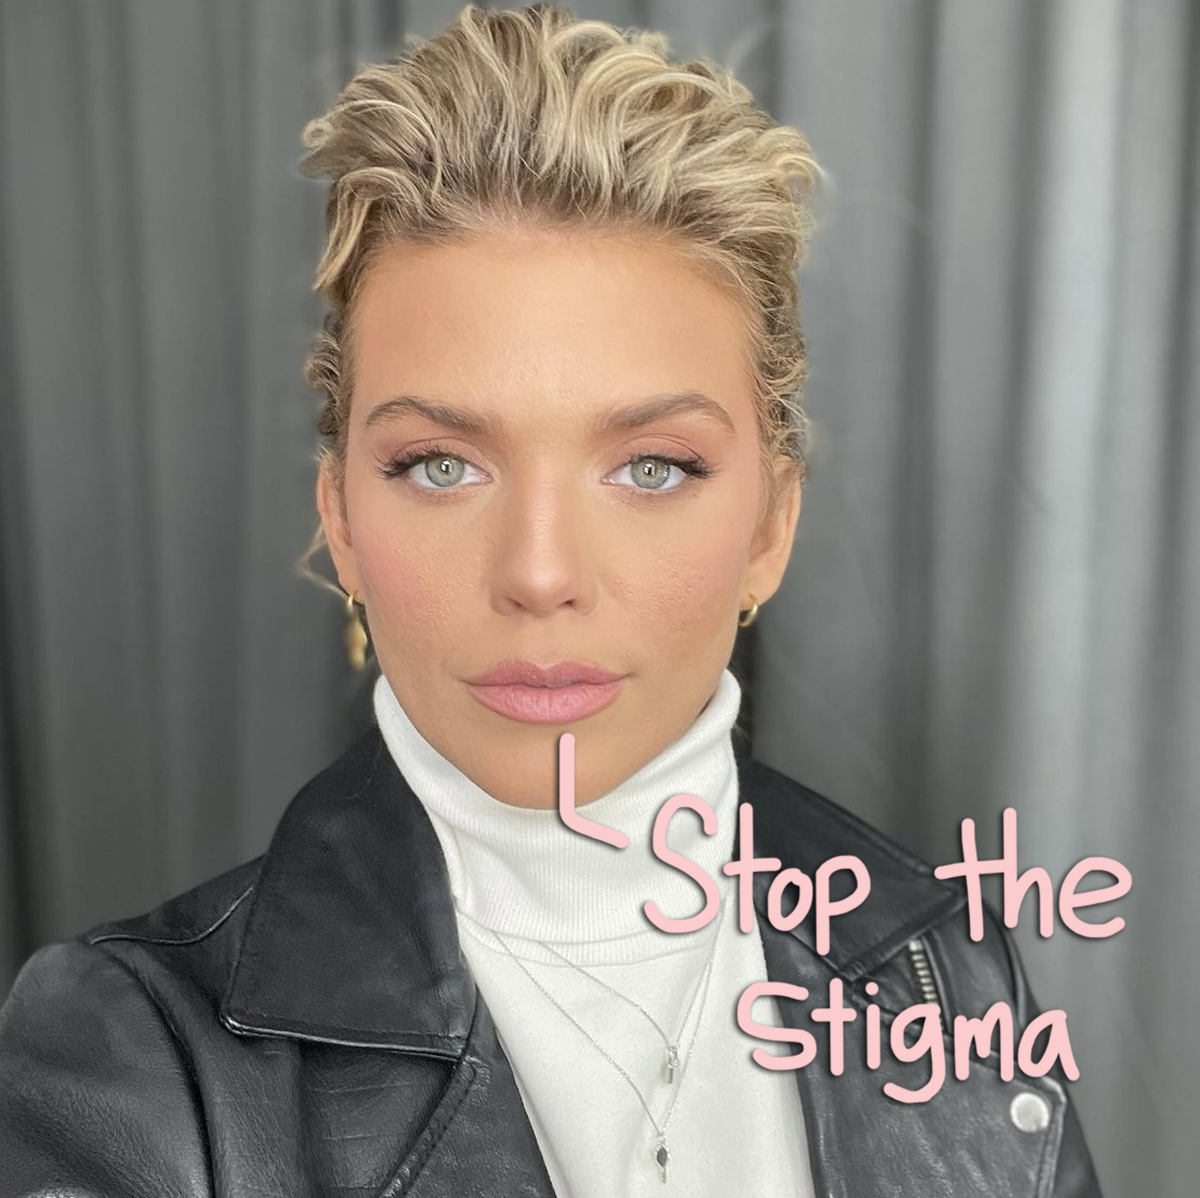 AnnaLynne McCord 'Uninterested In Shame' As She Announces Dissociative Identity Disorder Diagnosis